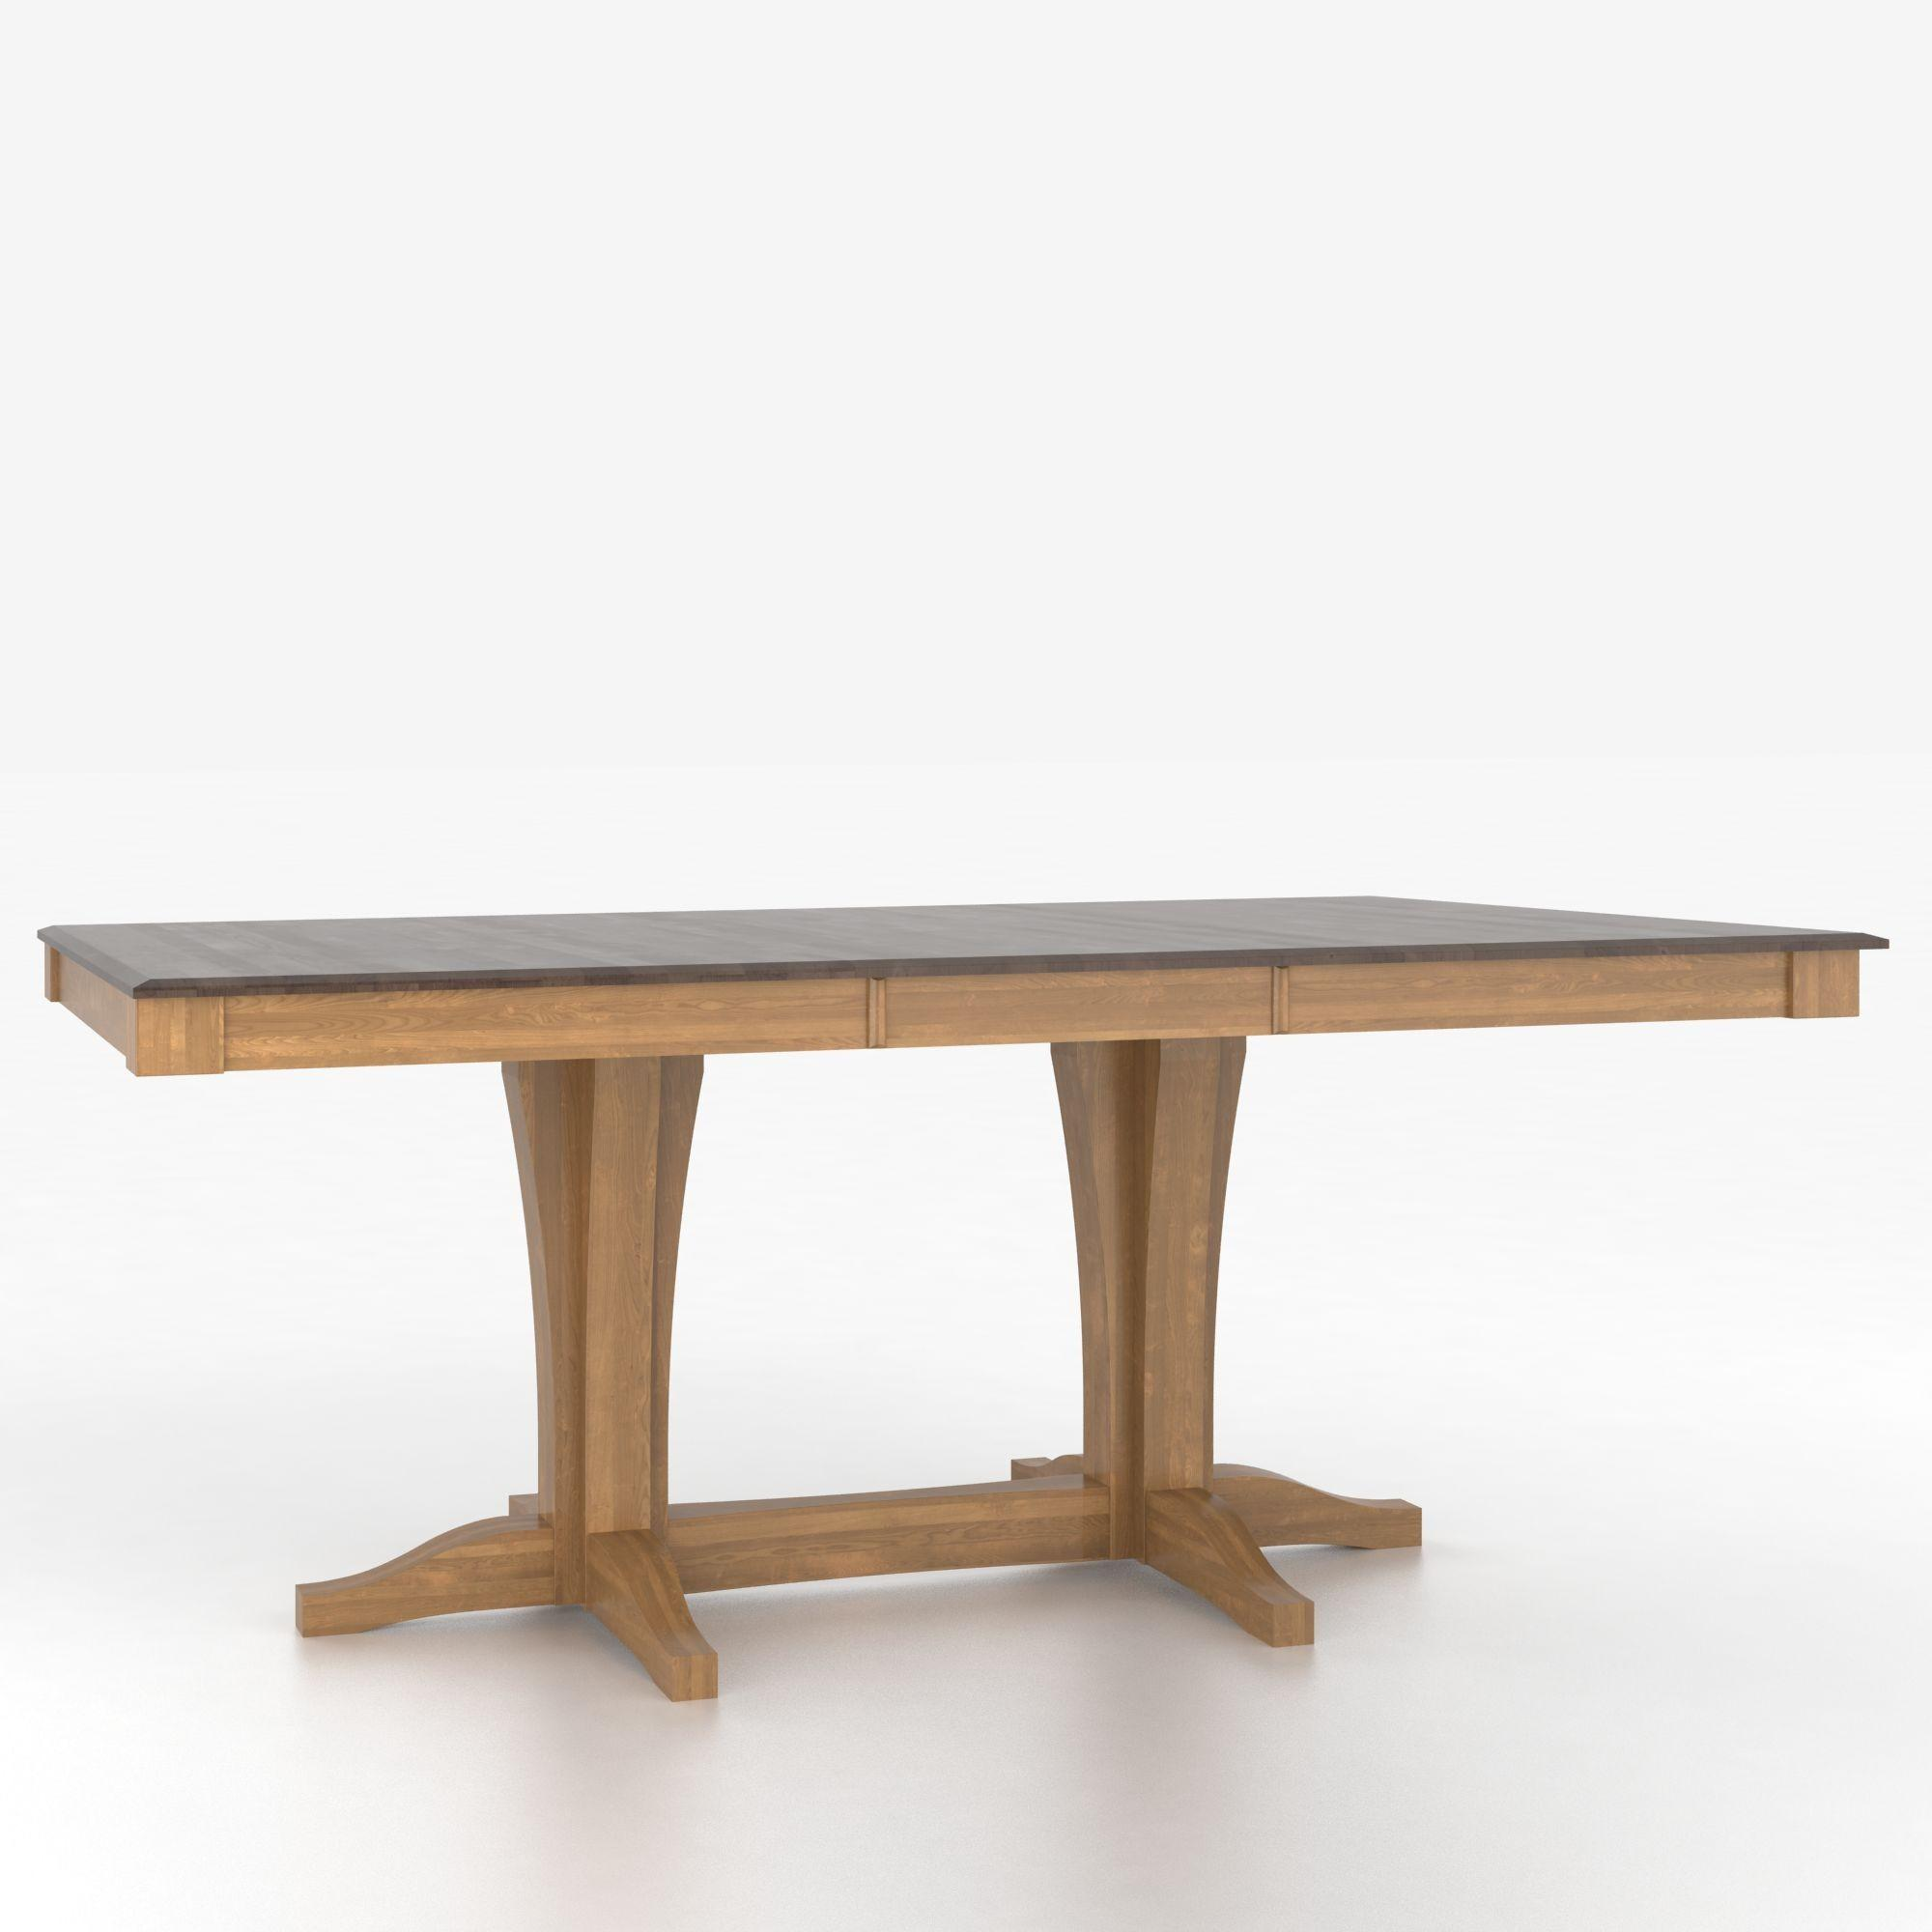 Custom Dining Tables Customizable Rectangular Table with Pedestal by Canadel at Gill Brothers Furniture